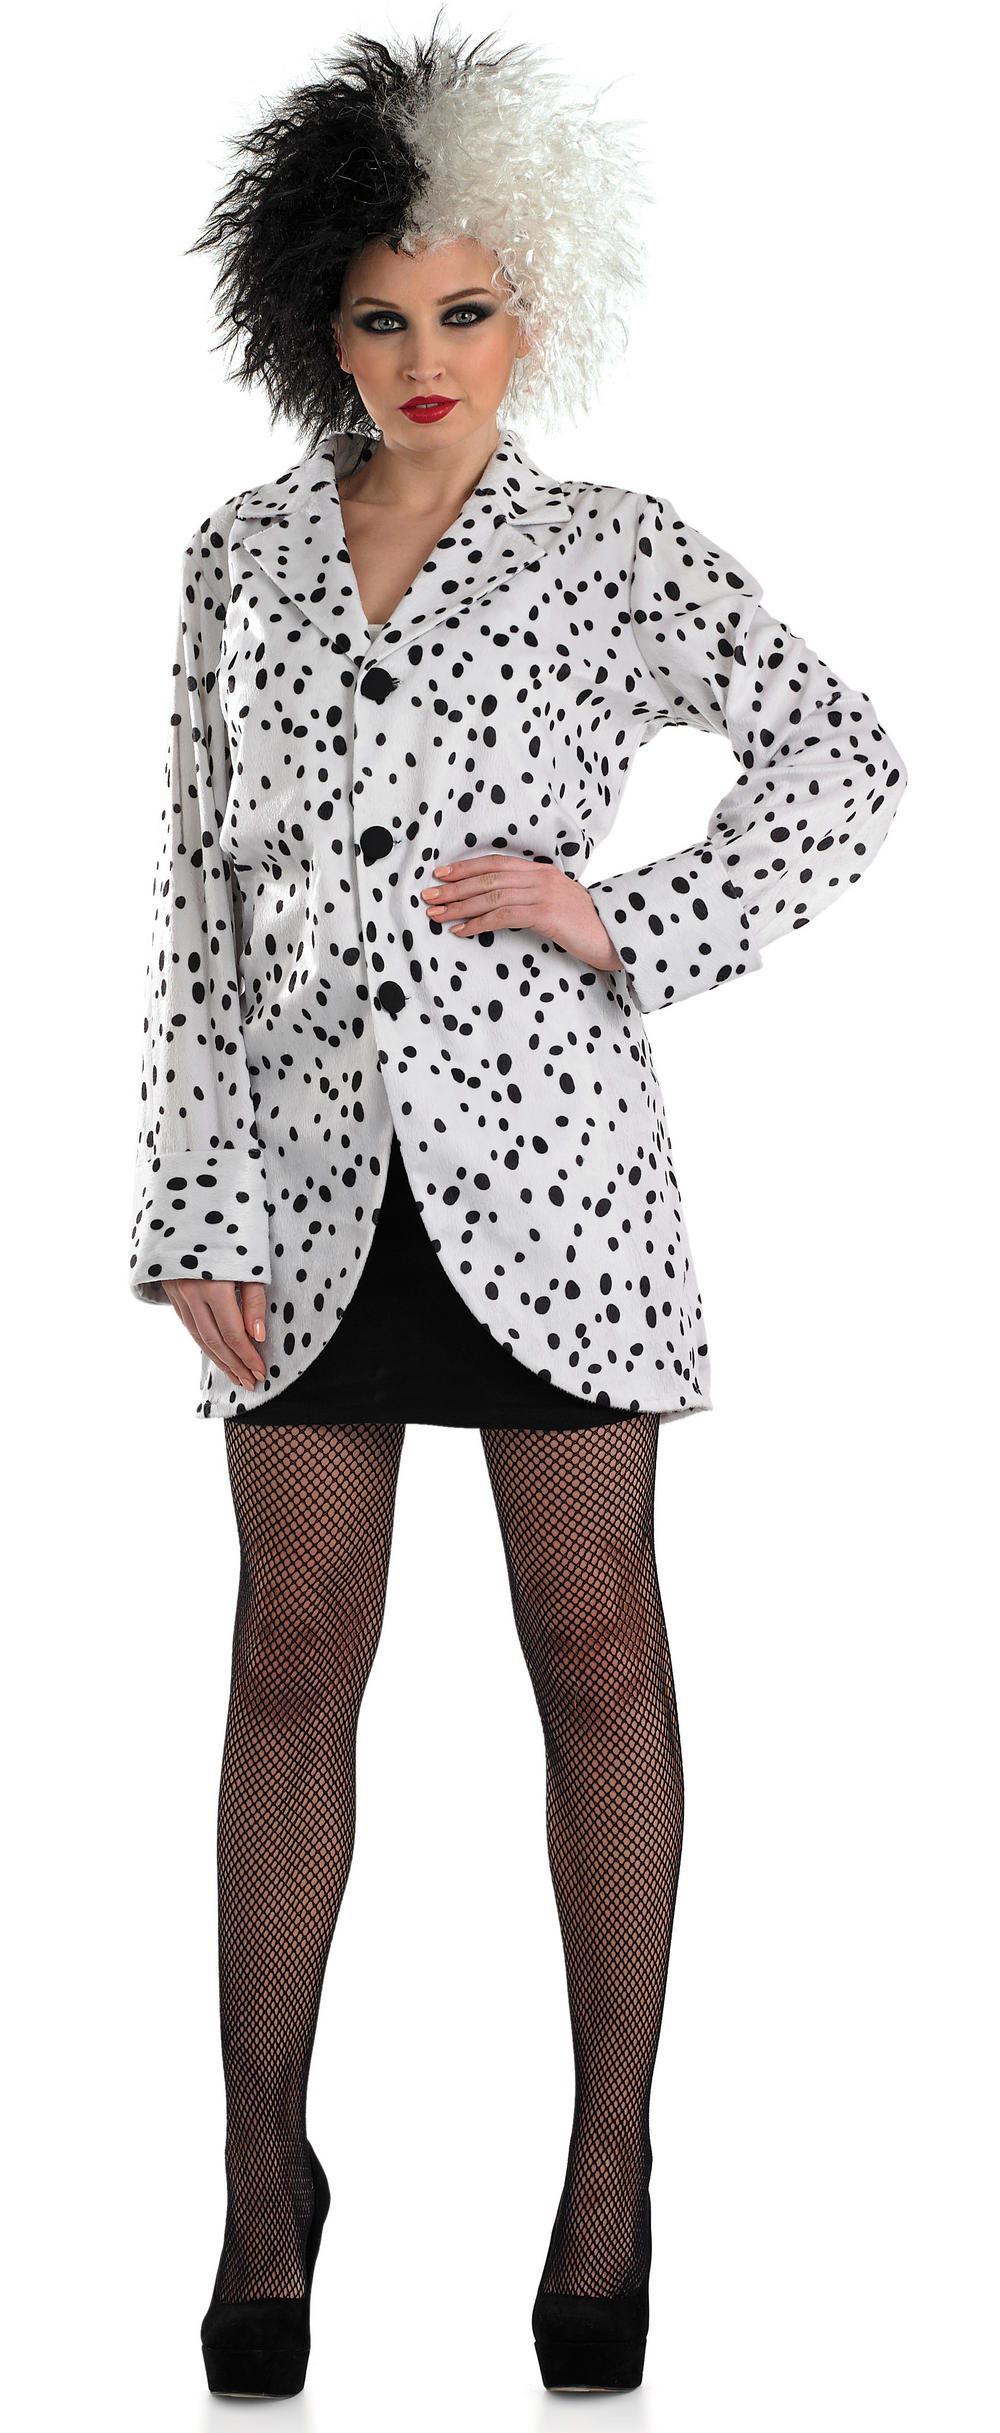 Dalmatian Ladies Jacket